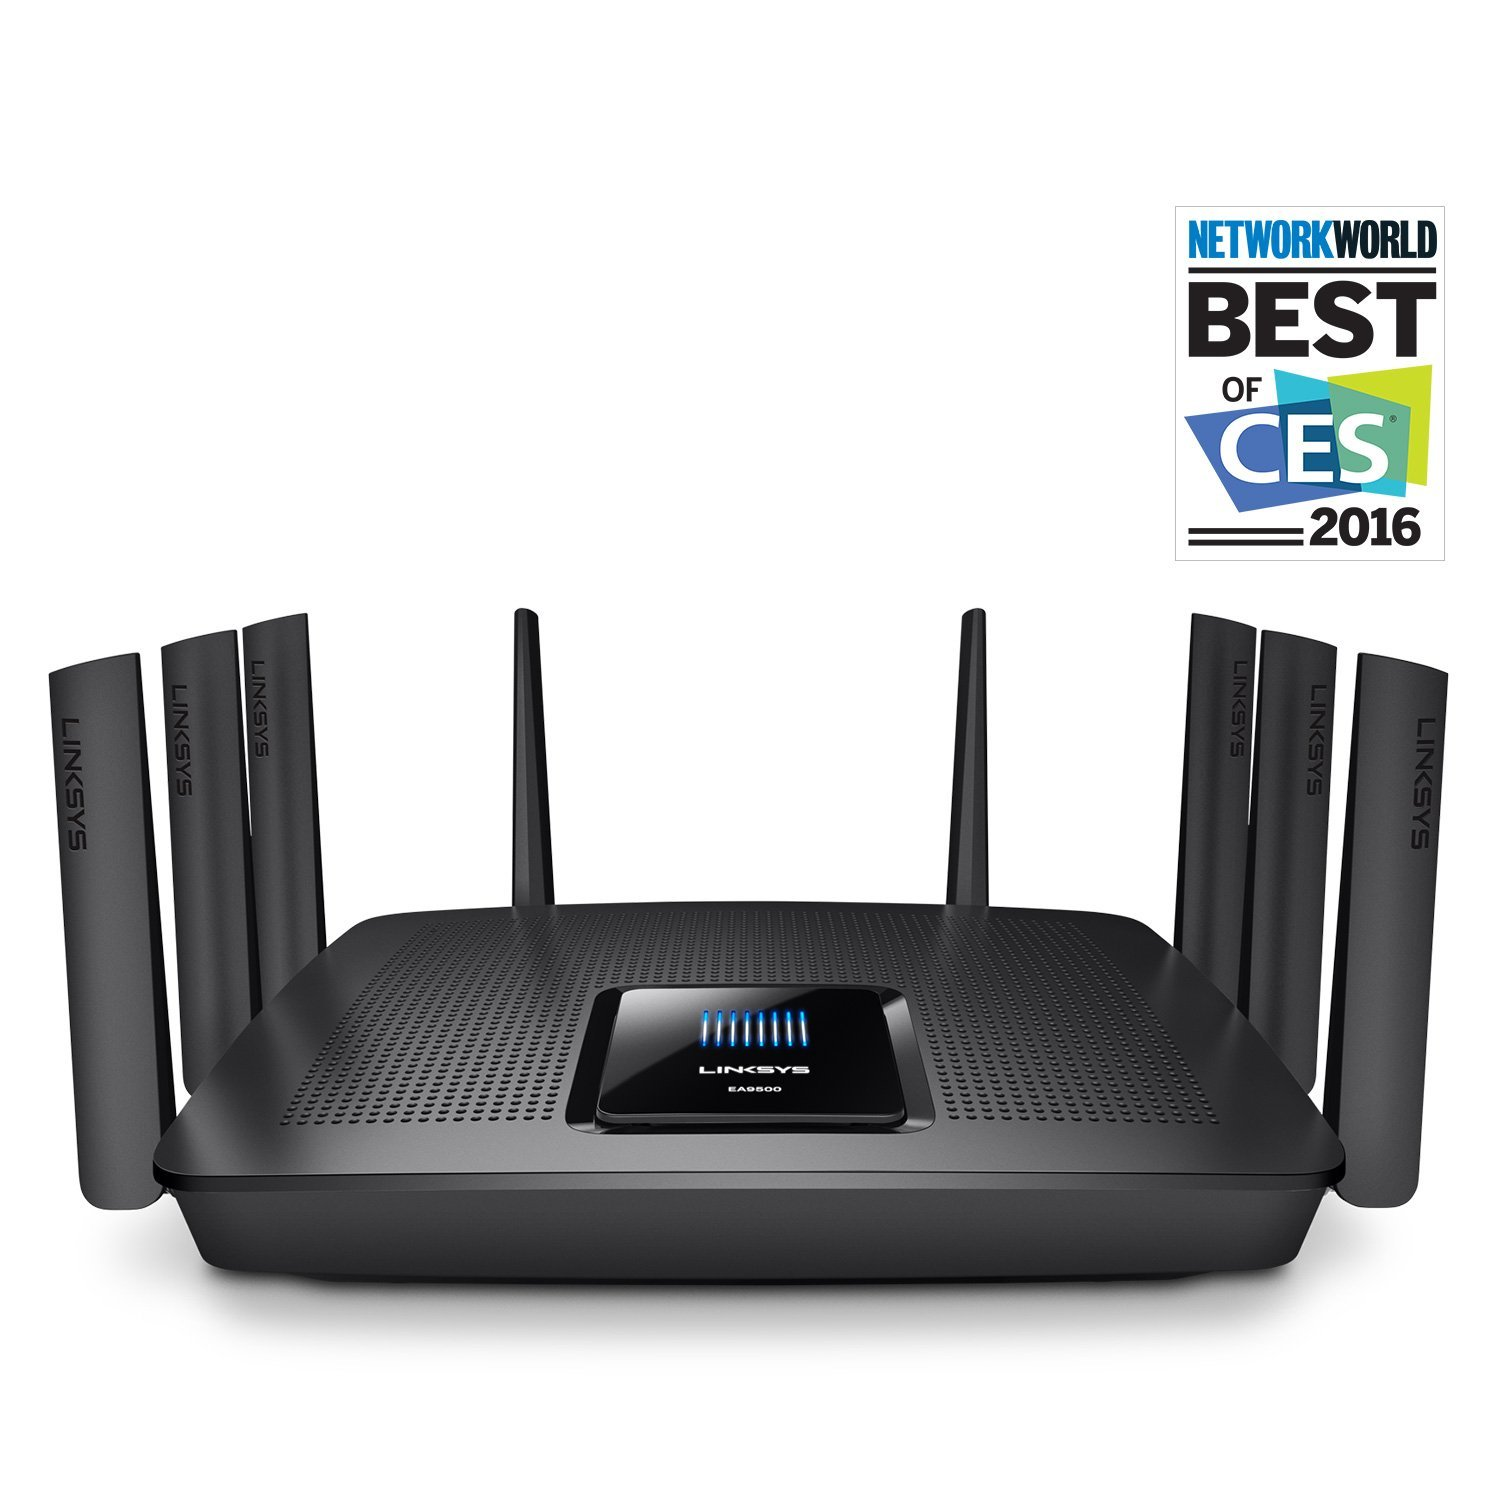 Top 5 Best Wireless Router For Home Network Reviews in 2020 4